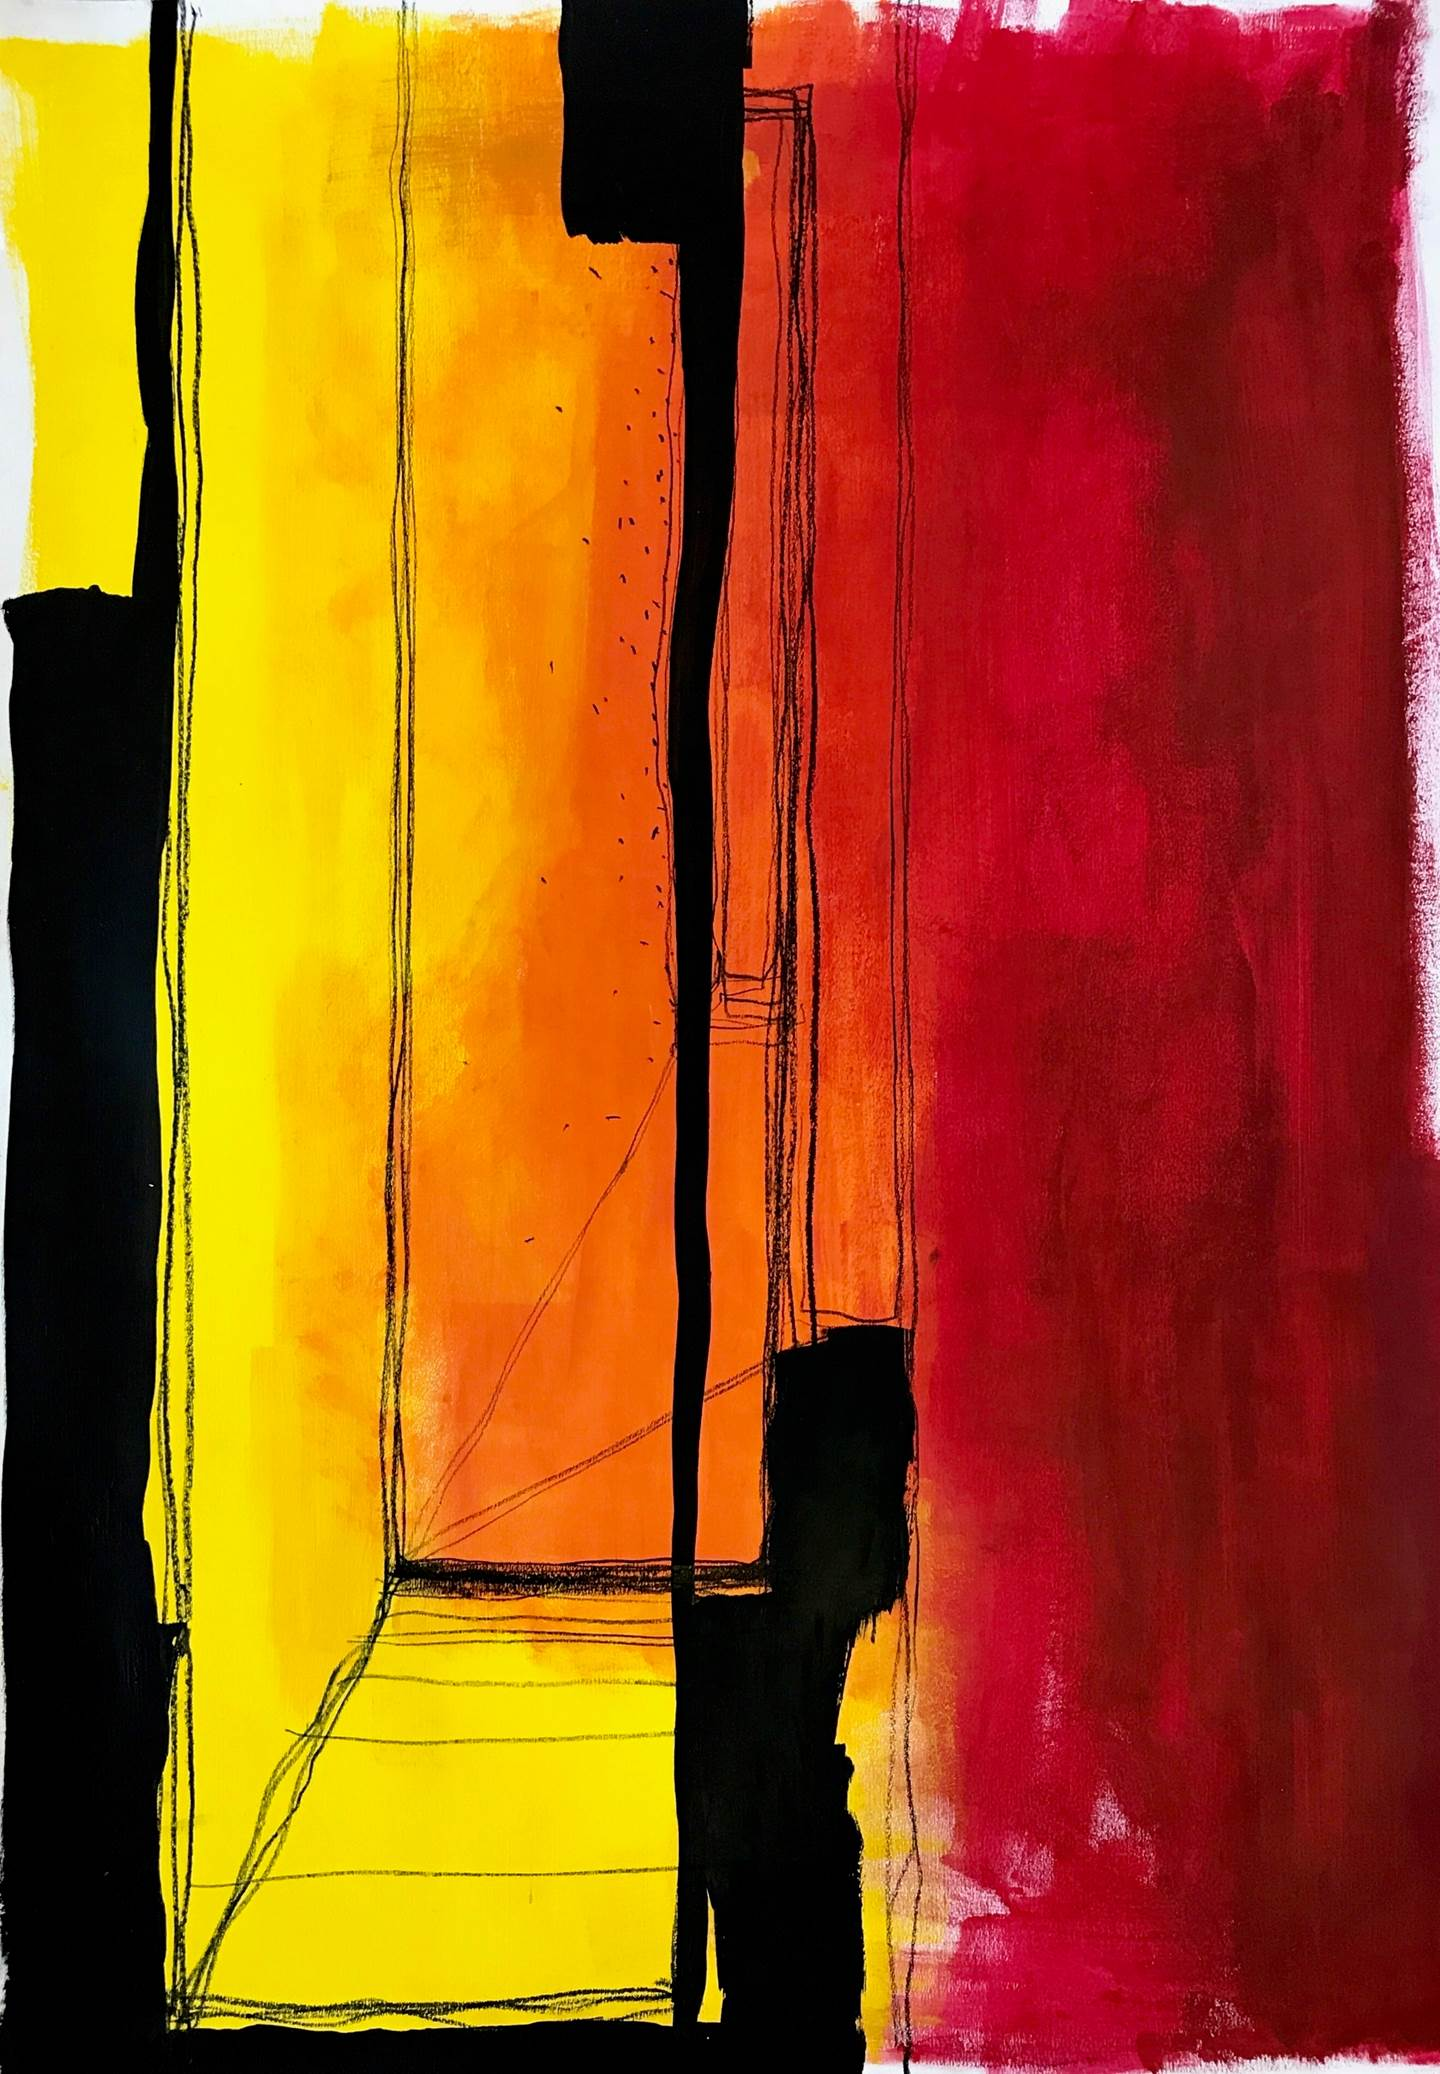 AROUND HERE #1, original Abstract Acrylic Painting by Ana Bonifácio